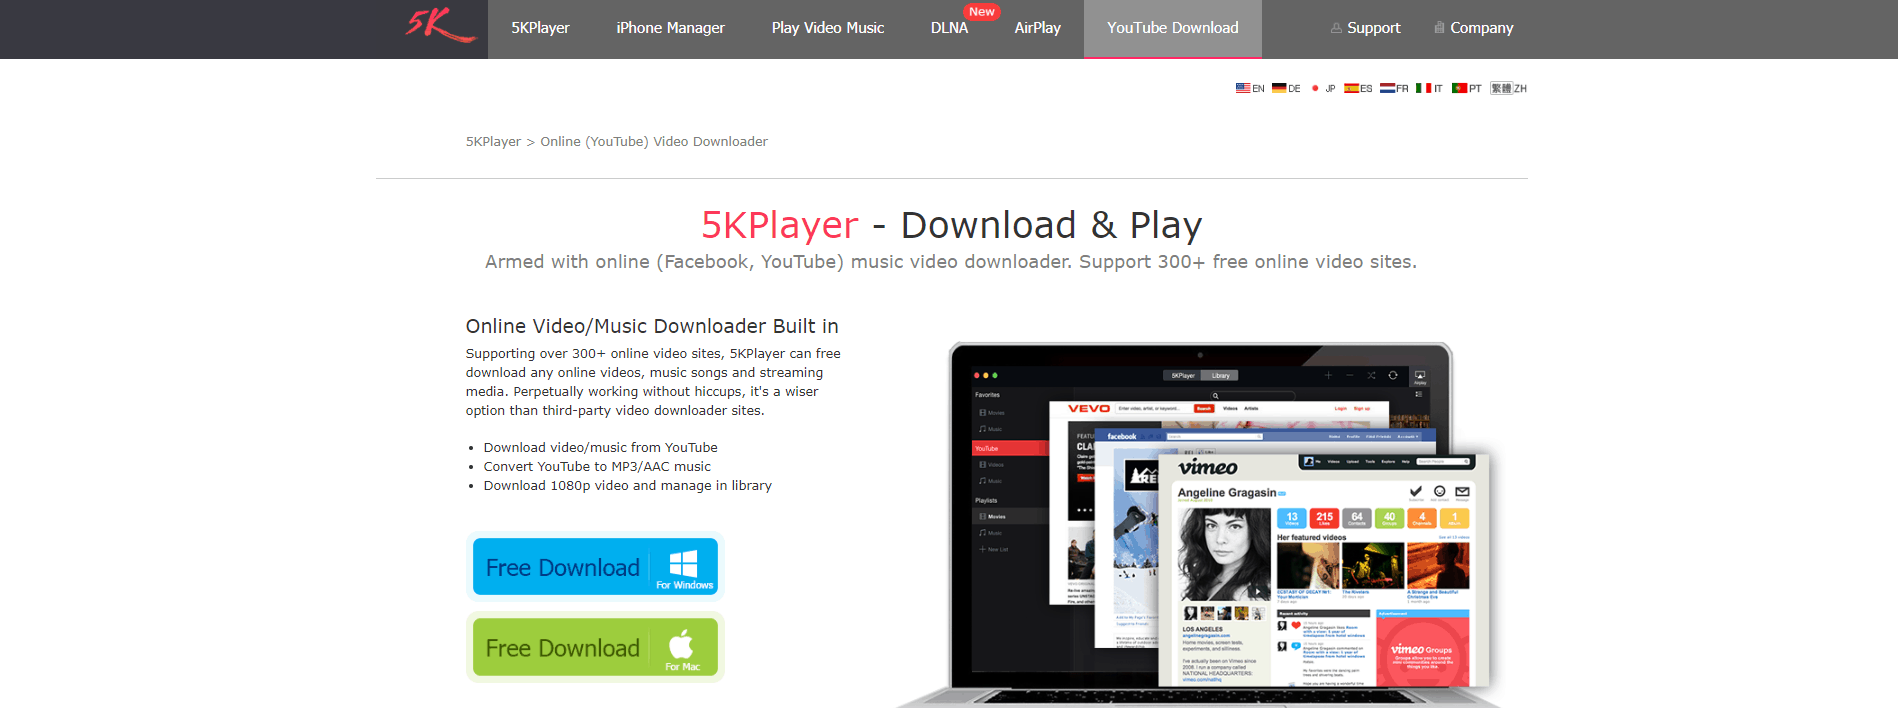 5KPlayer Homepage Screenshot